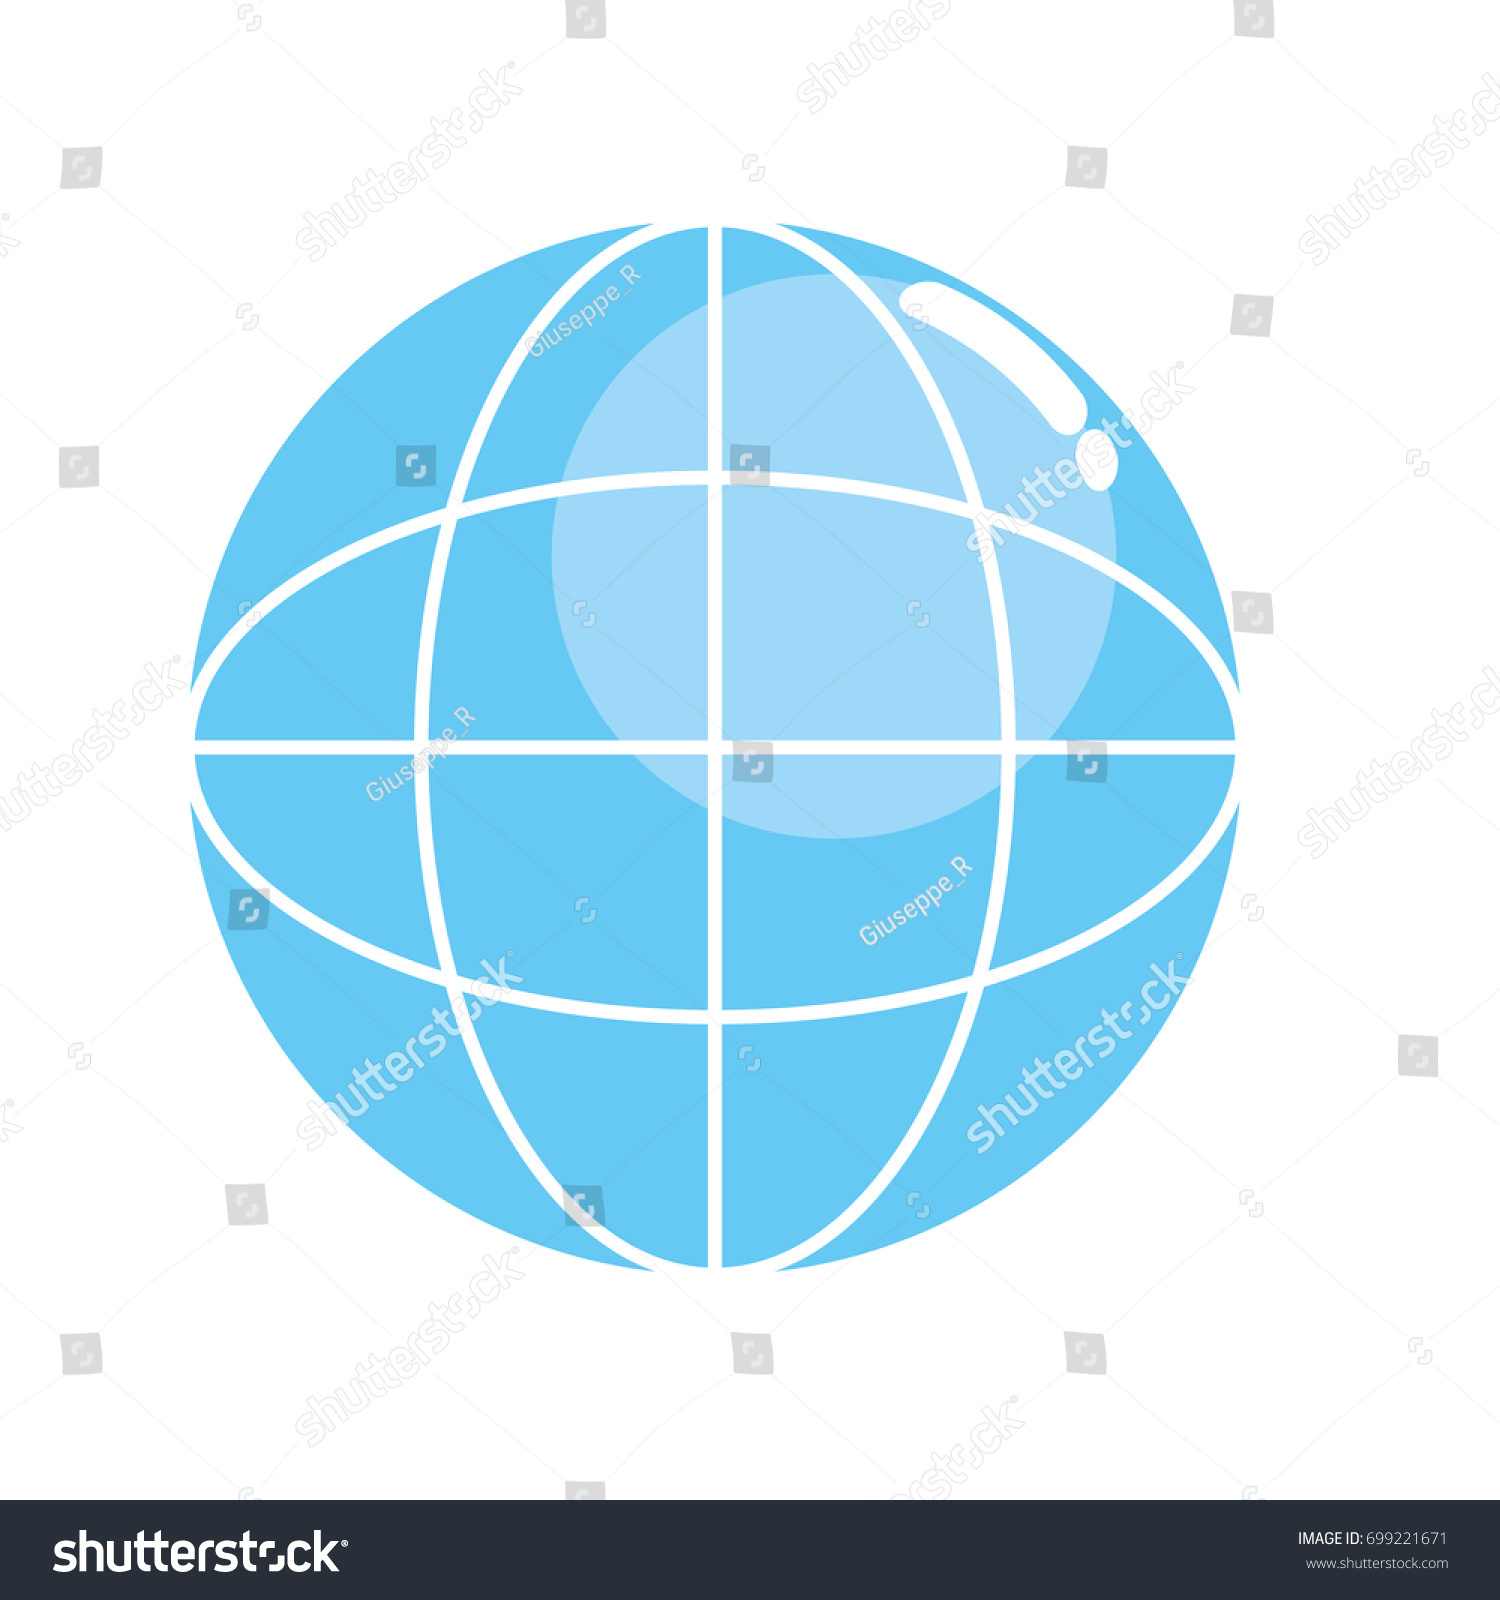 Global symbol data center connection stock vector 699221671 global symbol to data center connection biocorpaavc